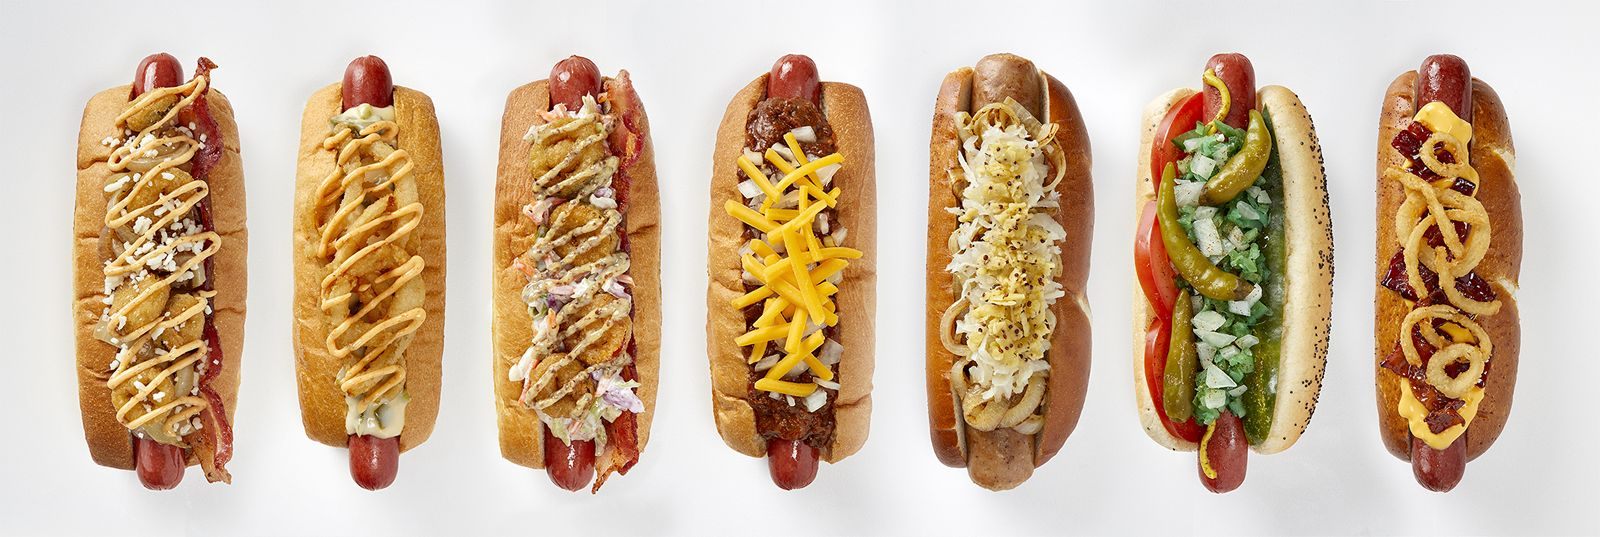 America's Dog & Burger Launches Monthly Meal Deals To Celebrate Community